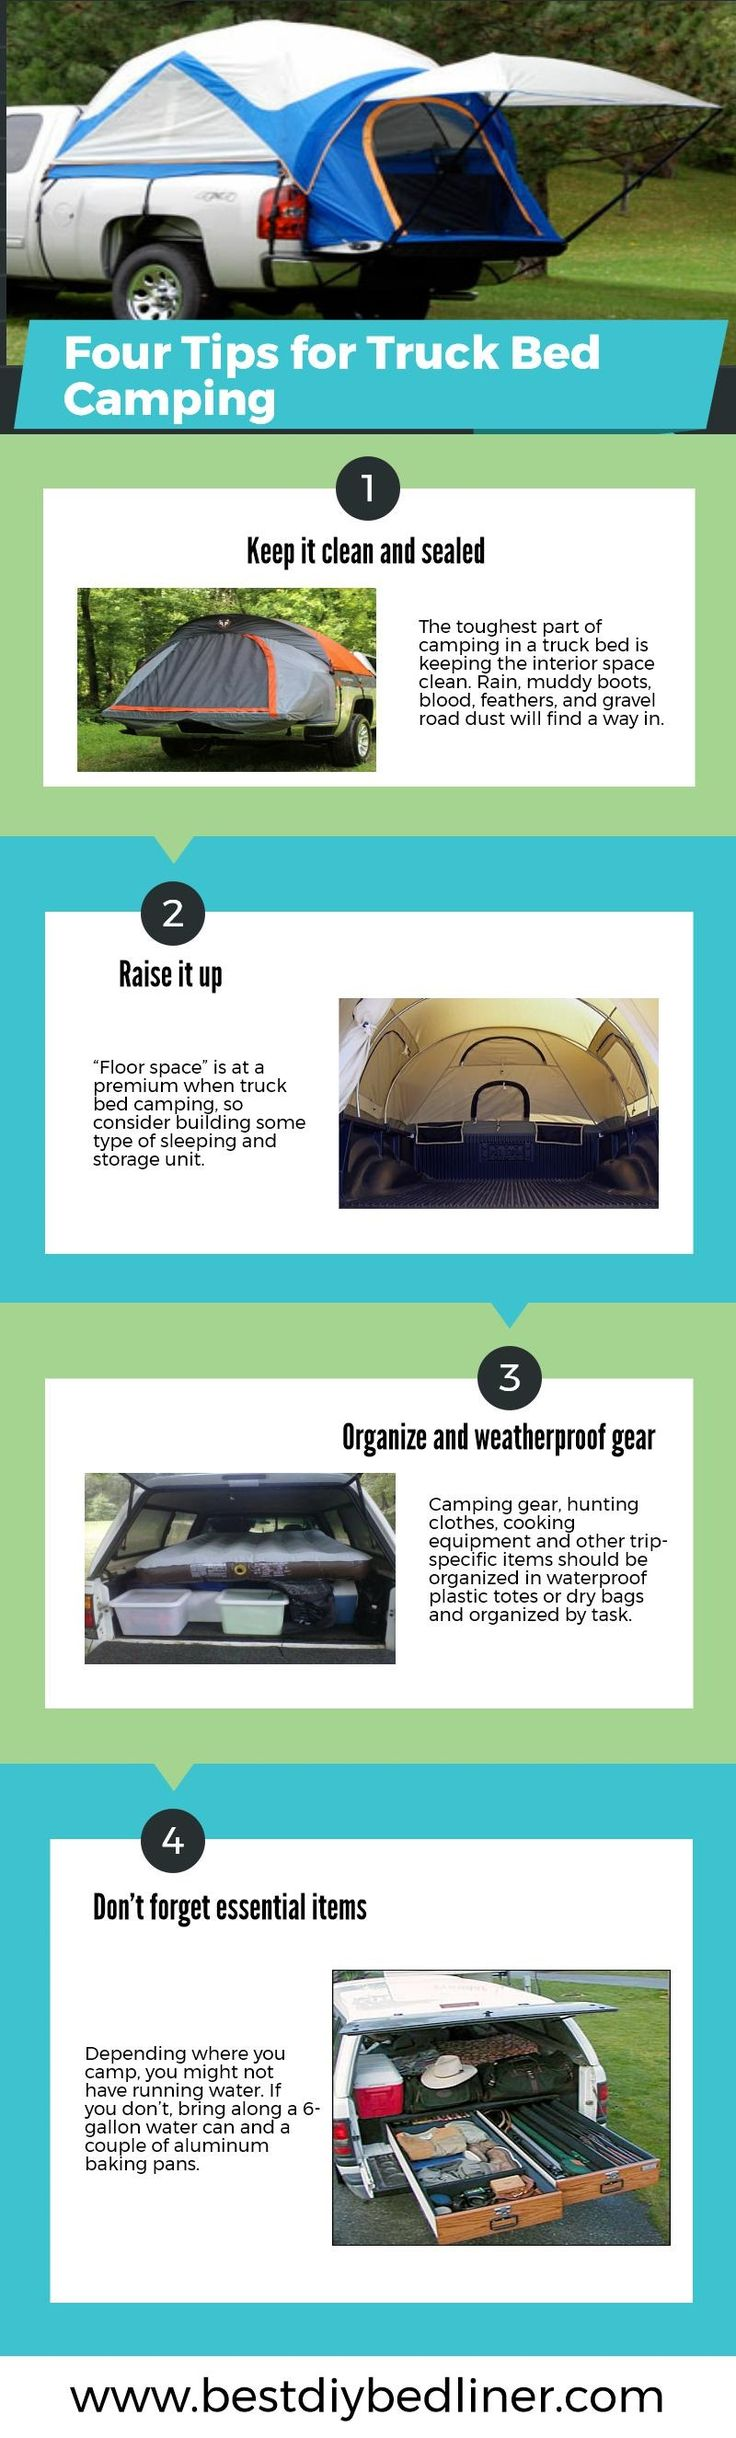 Tips for truckbed camping https www bestdiybedliner com best truck bed tent reviews if you want to make your journey memorable and enjoyable